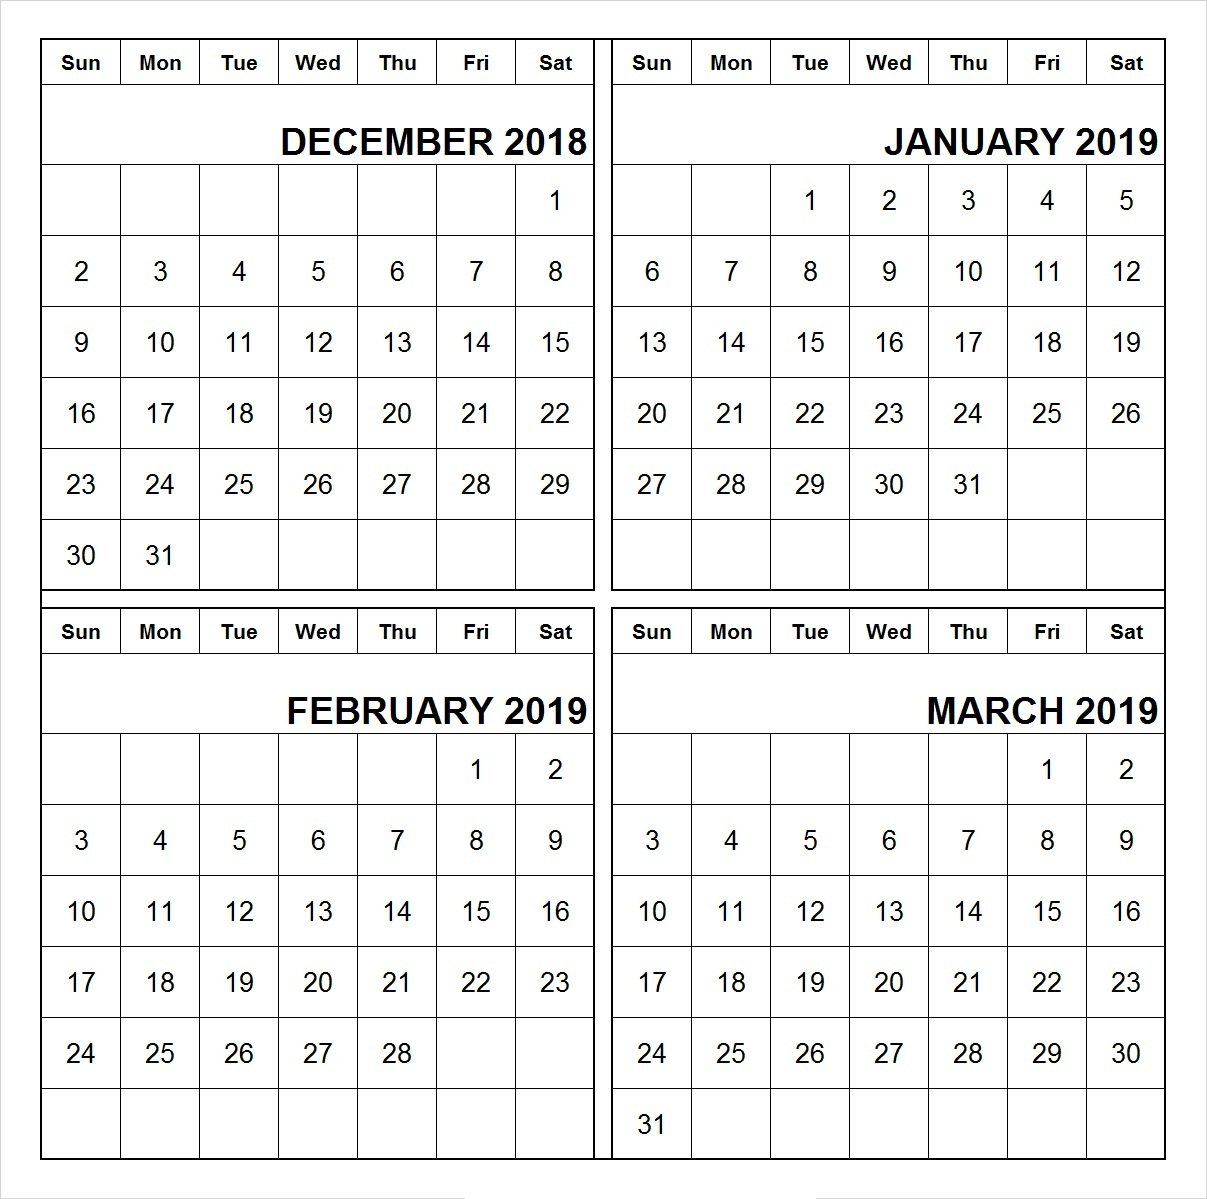 Printable Calendar 2018 January February March | Printable Calendar 2019 Calendar 2019 January February March